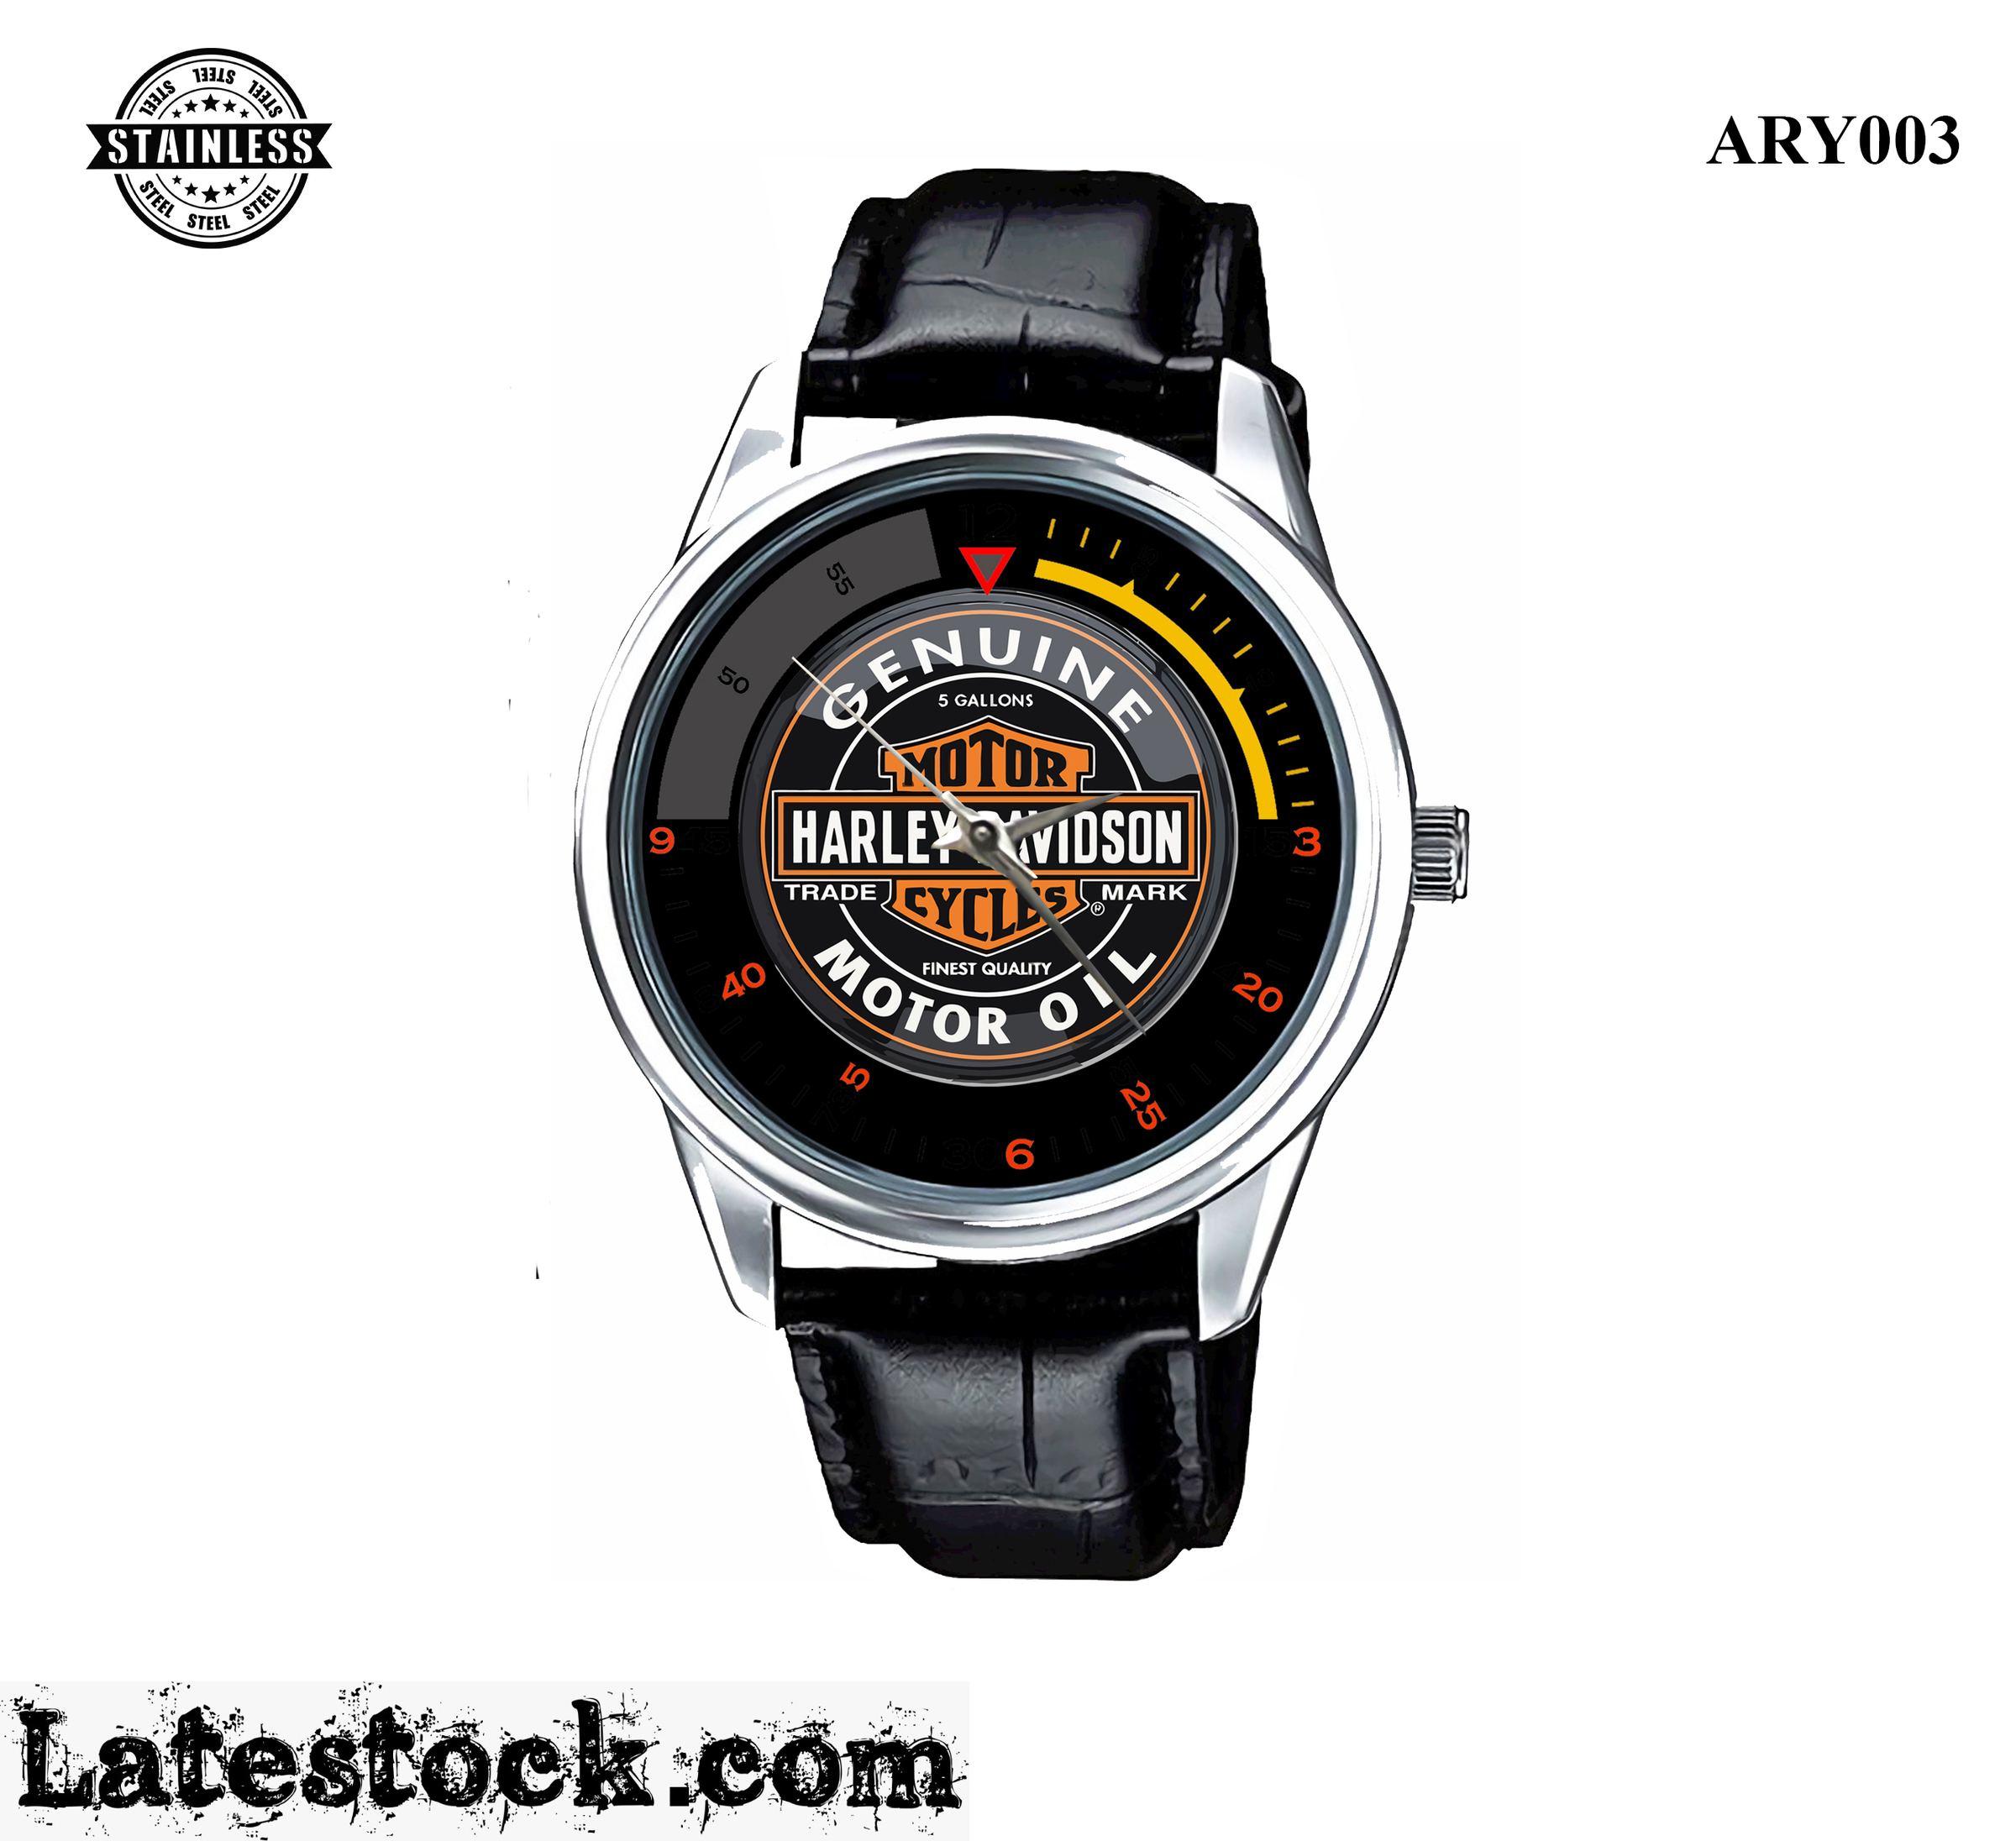 3.Rare new design_Harley Davidson Genuine_Sport Metal Watches.jpg